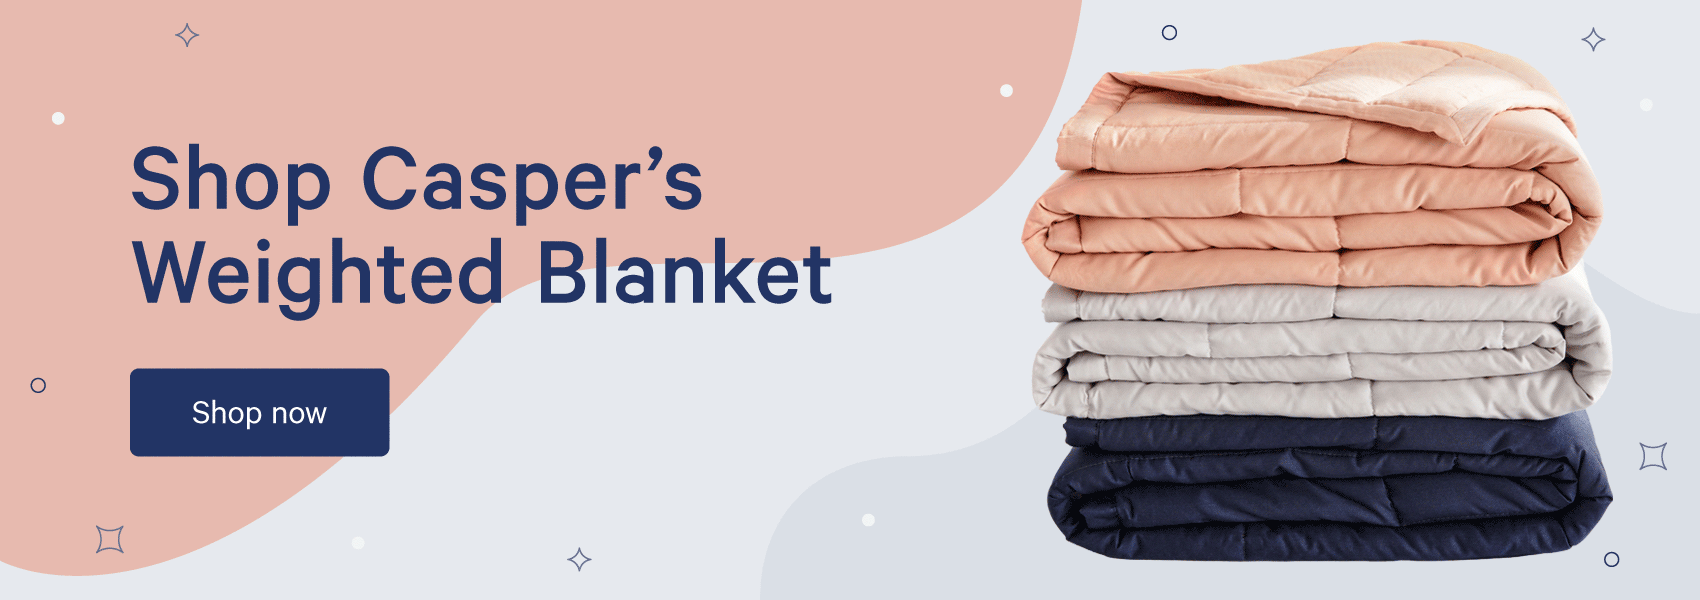 shop Casper's weighted blanket